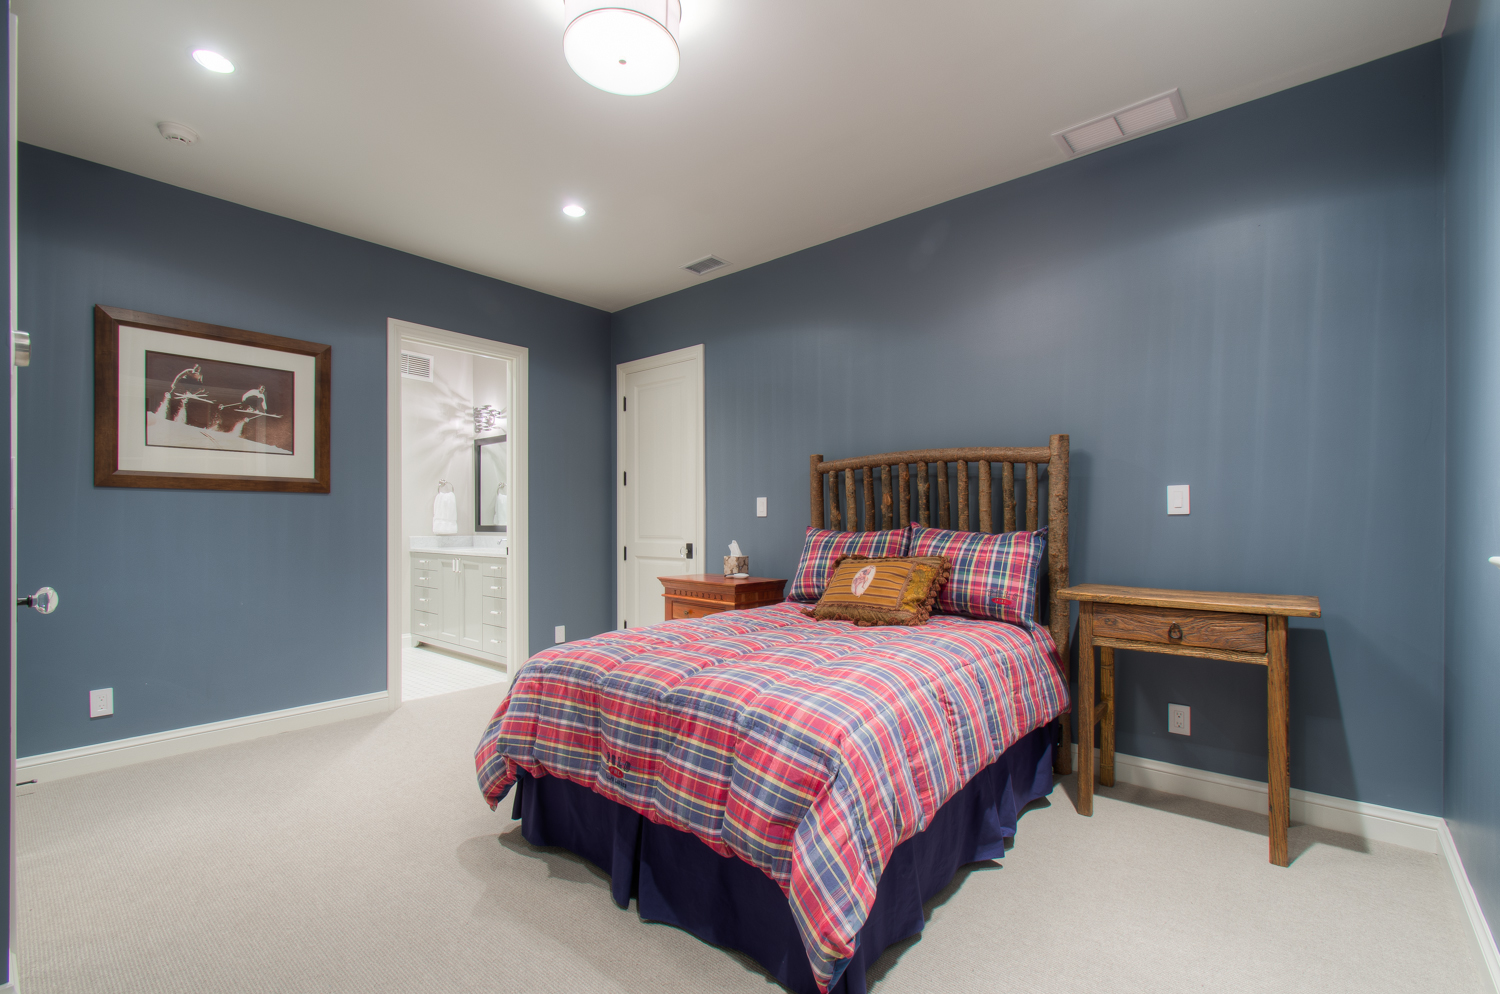 Spacious Bedroom with Plaid Linens and Blue Walls